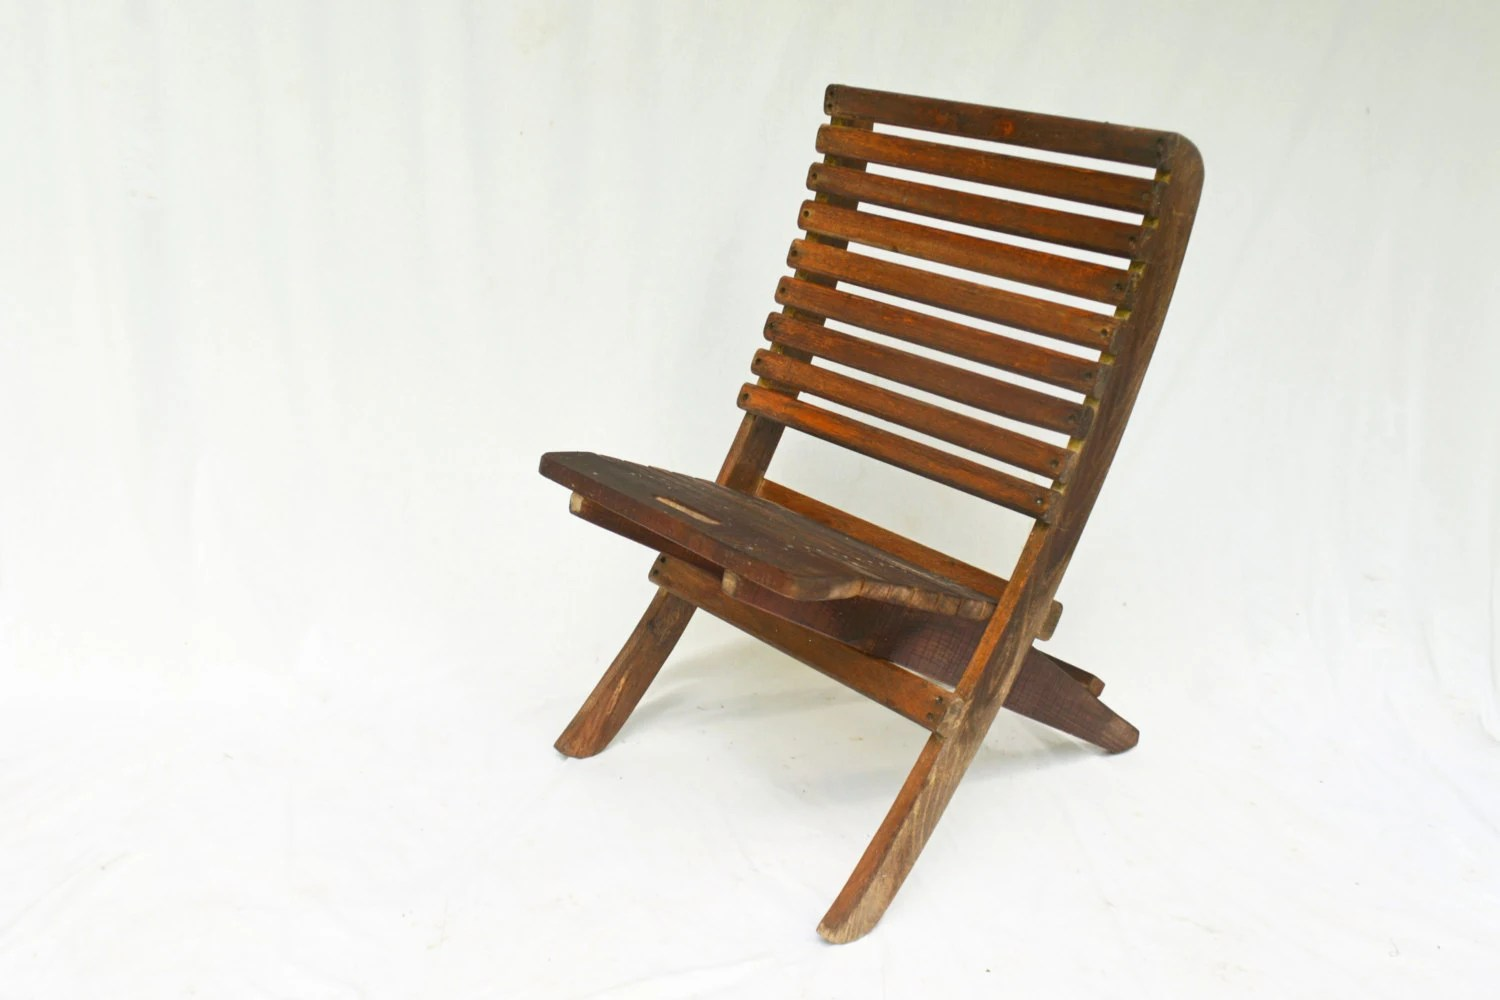 Folding Wood Beach Chair Vintage Outdoor Chairs 2 Wooden Folding Chairs By